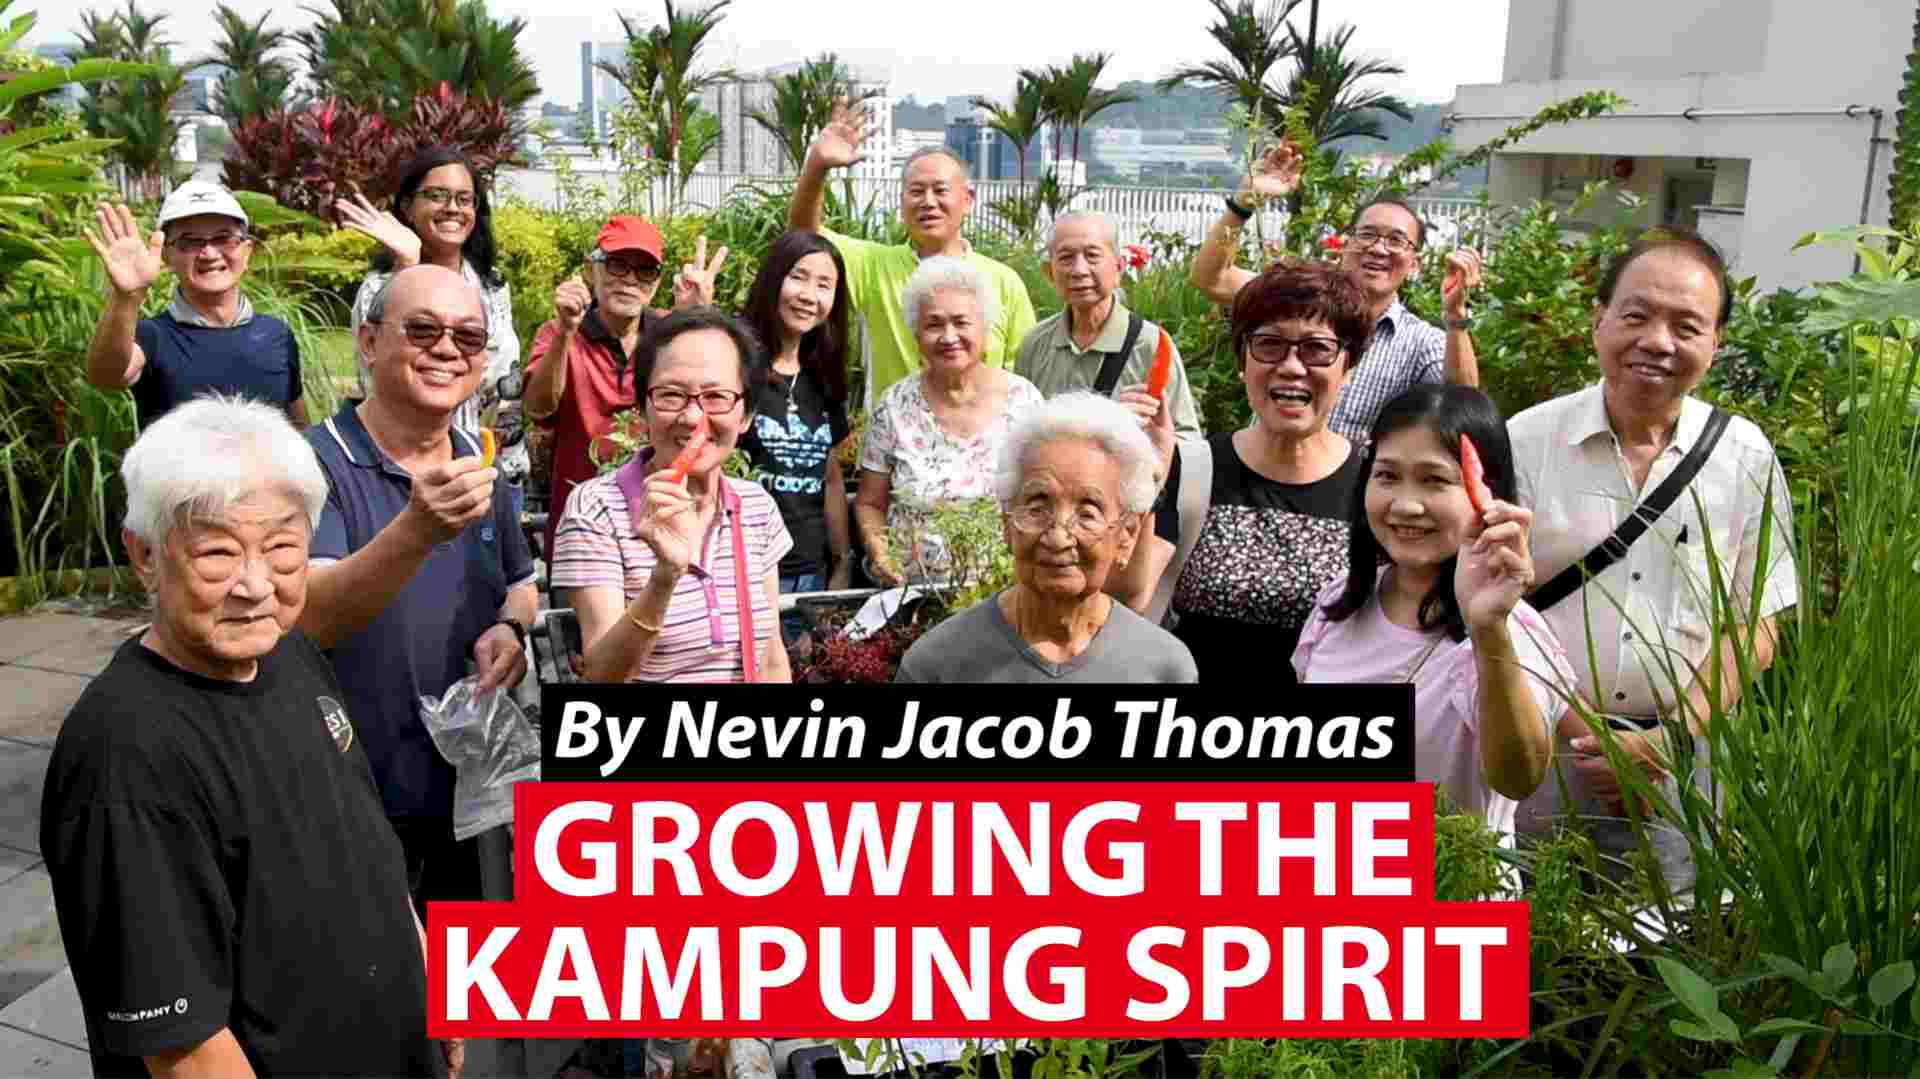 Growing the kampung spirit, on a rooftop garden with a difference